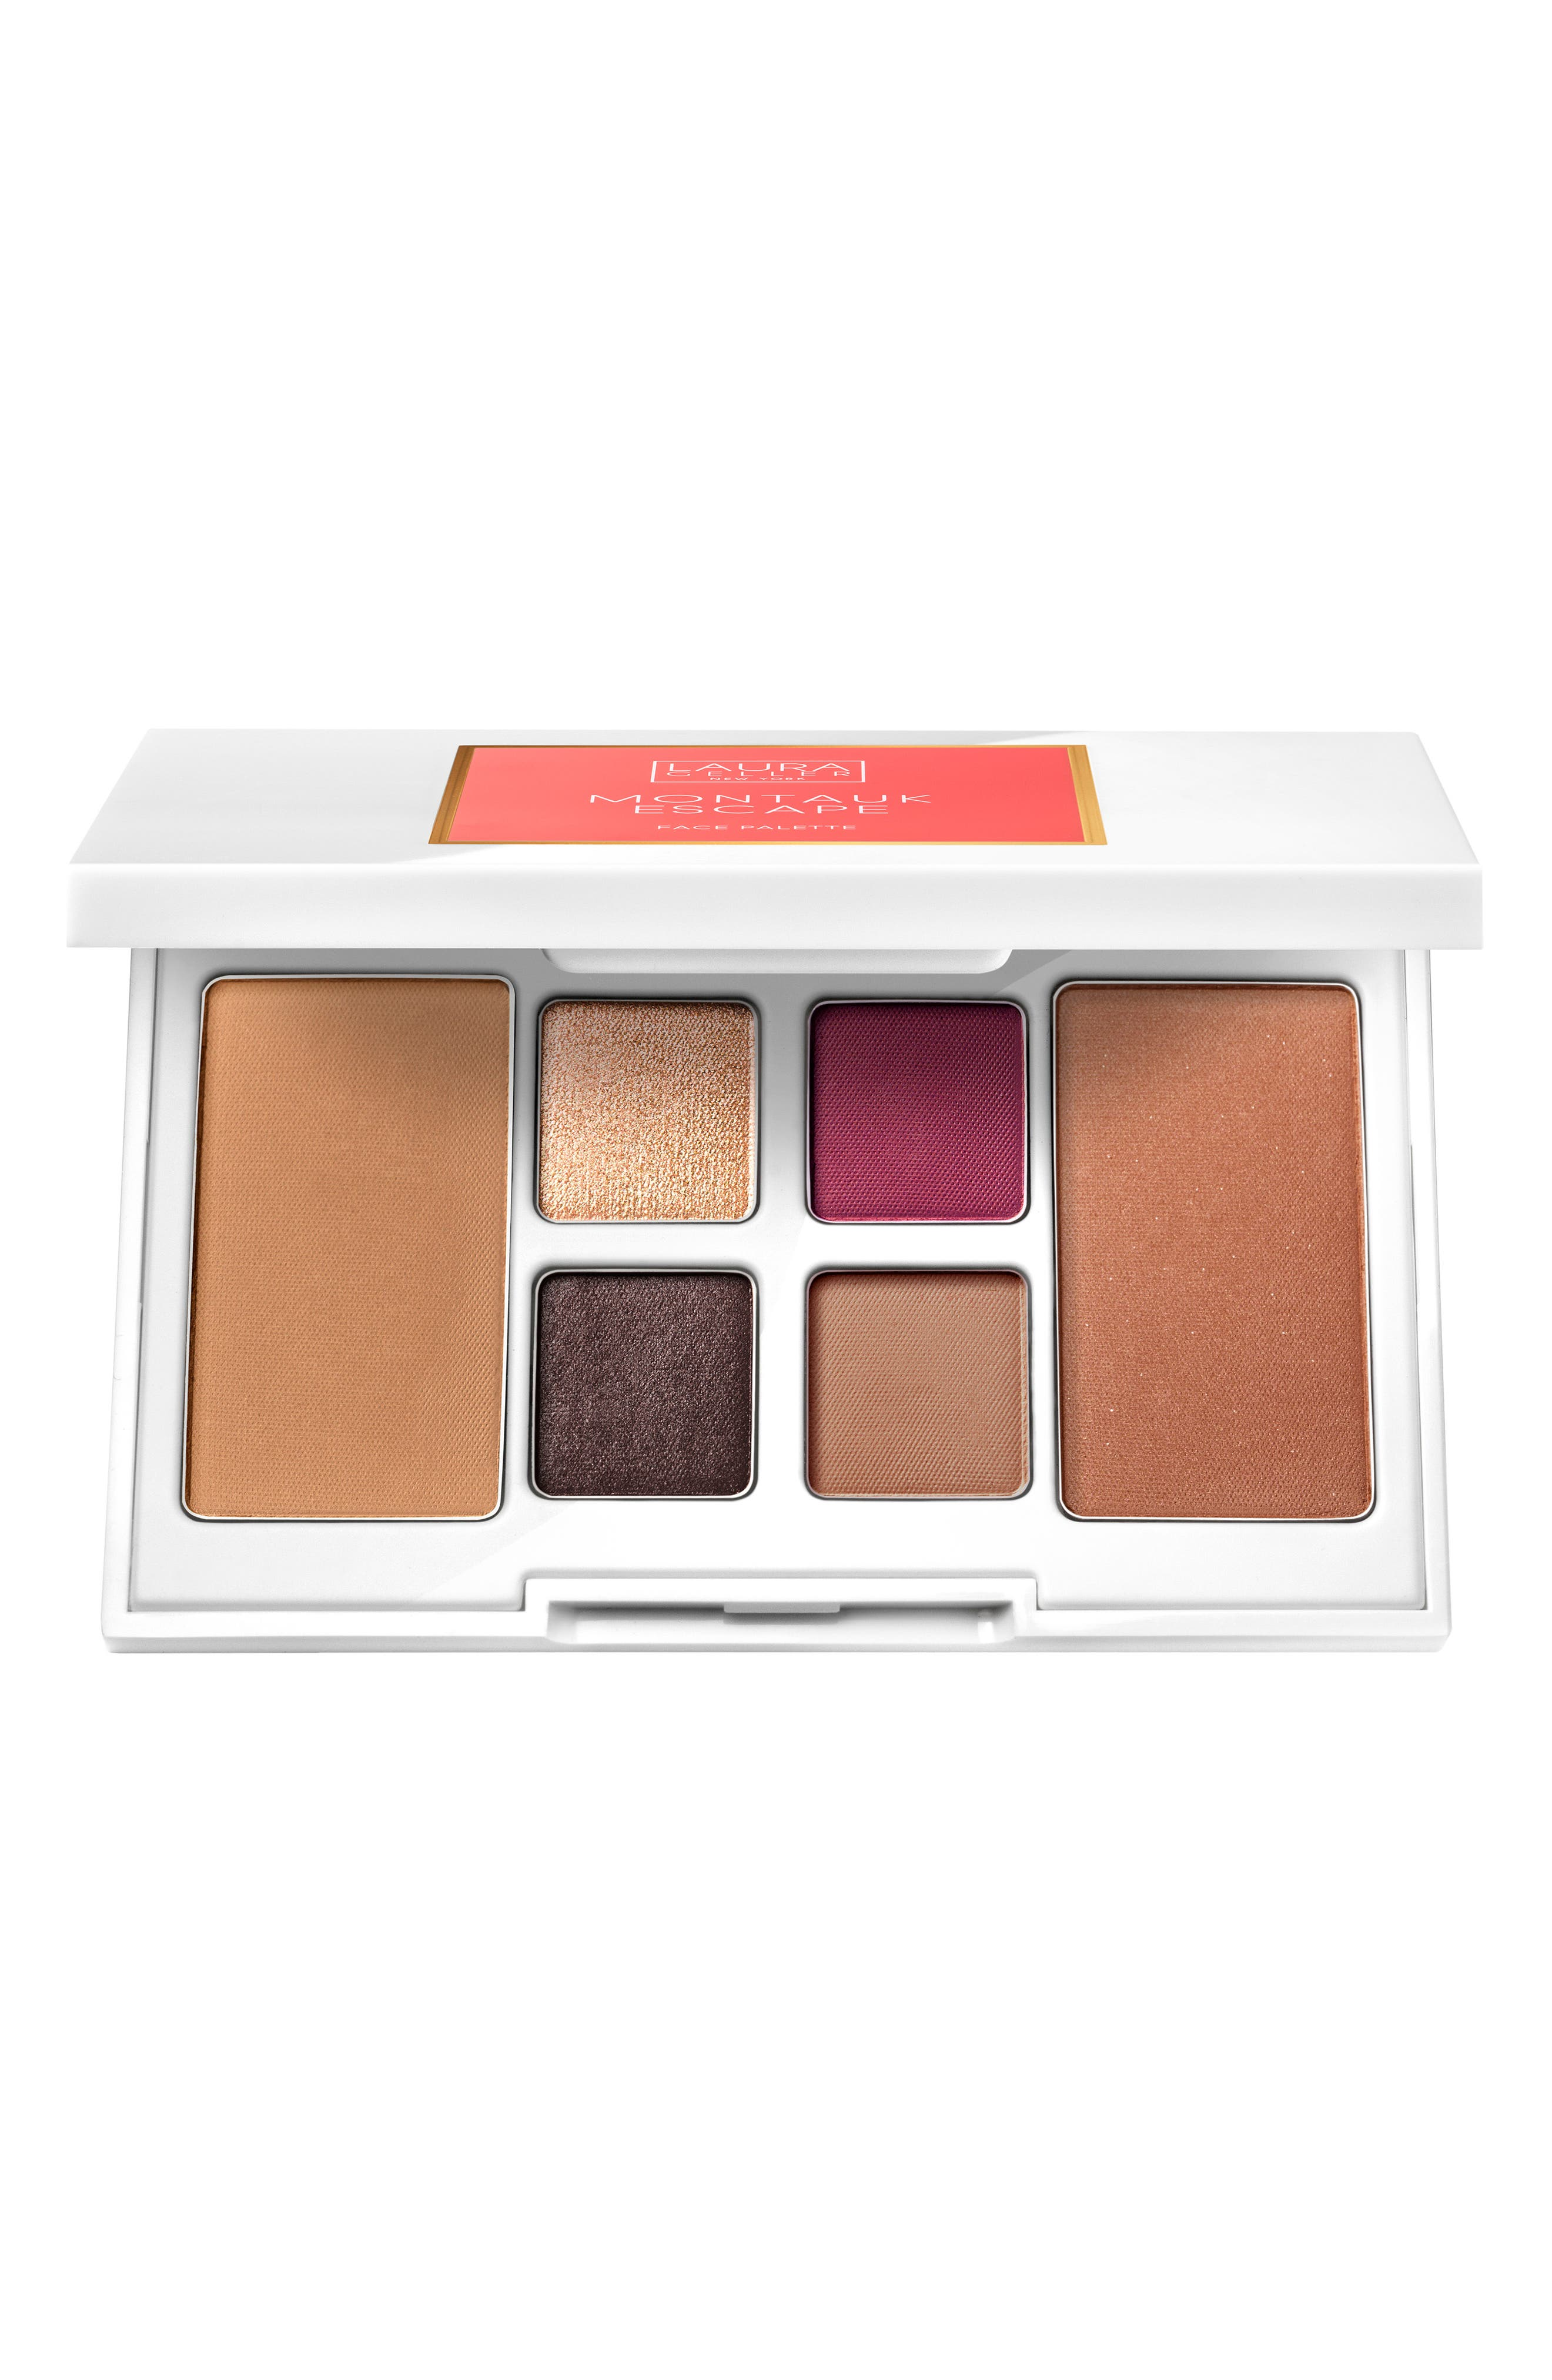 Montauk Escape Face Palette,                             Main thumbnail 1, color,                             No Color